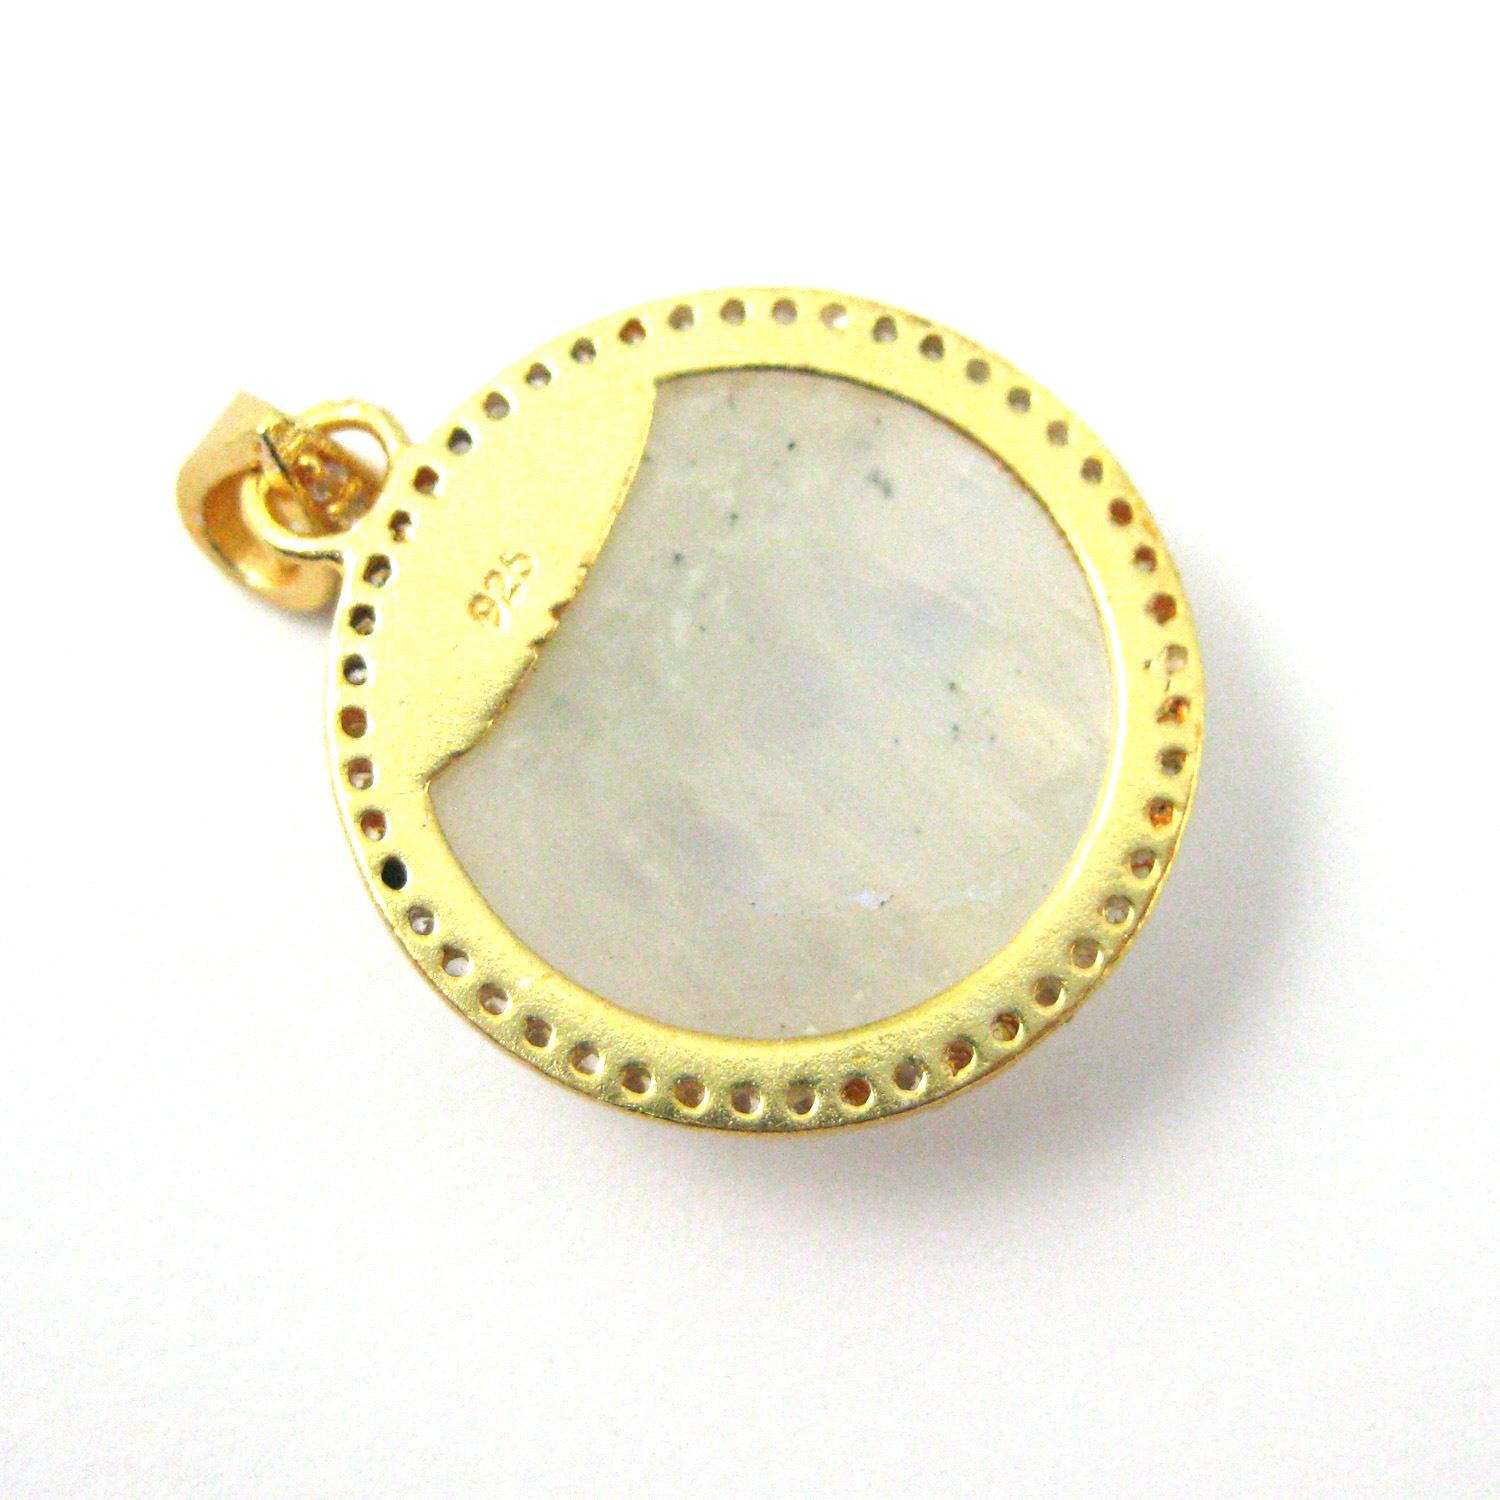 22k Gold plated Sterling Silver Pave Bezel Gemstone Pendant - Cubic Zirconia Pave Setting -  Round Faceted Stone- Moonstone - 21mm